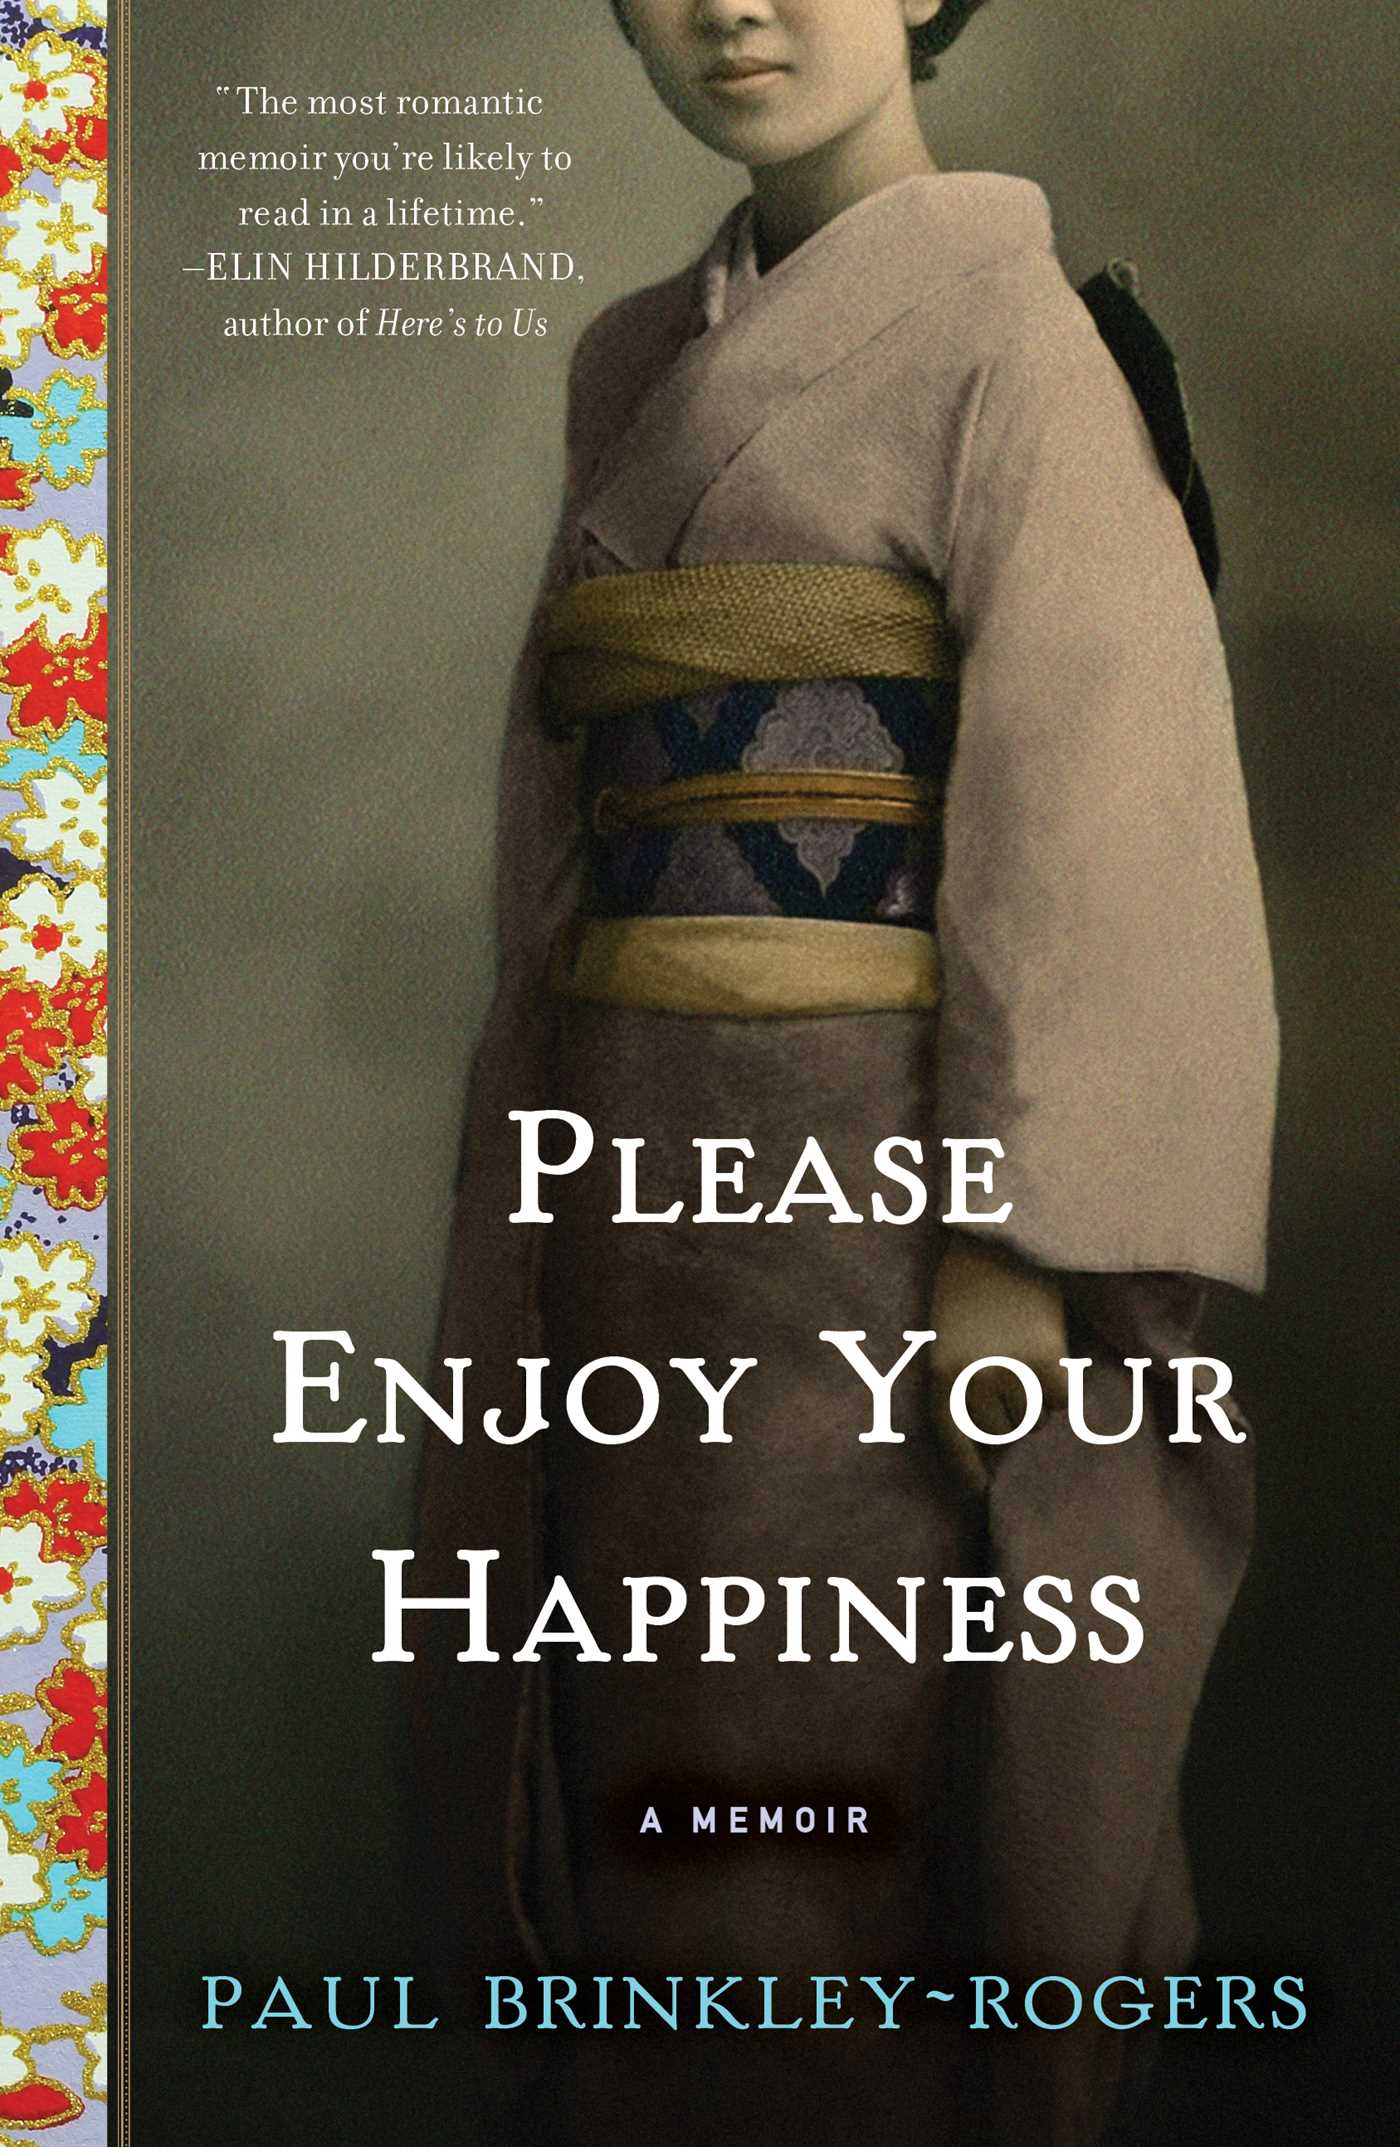 Please enjoy your happiness 9781501151255 hr